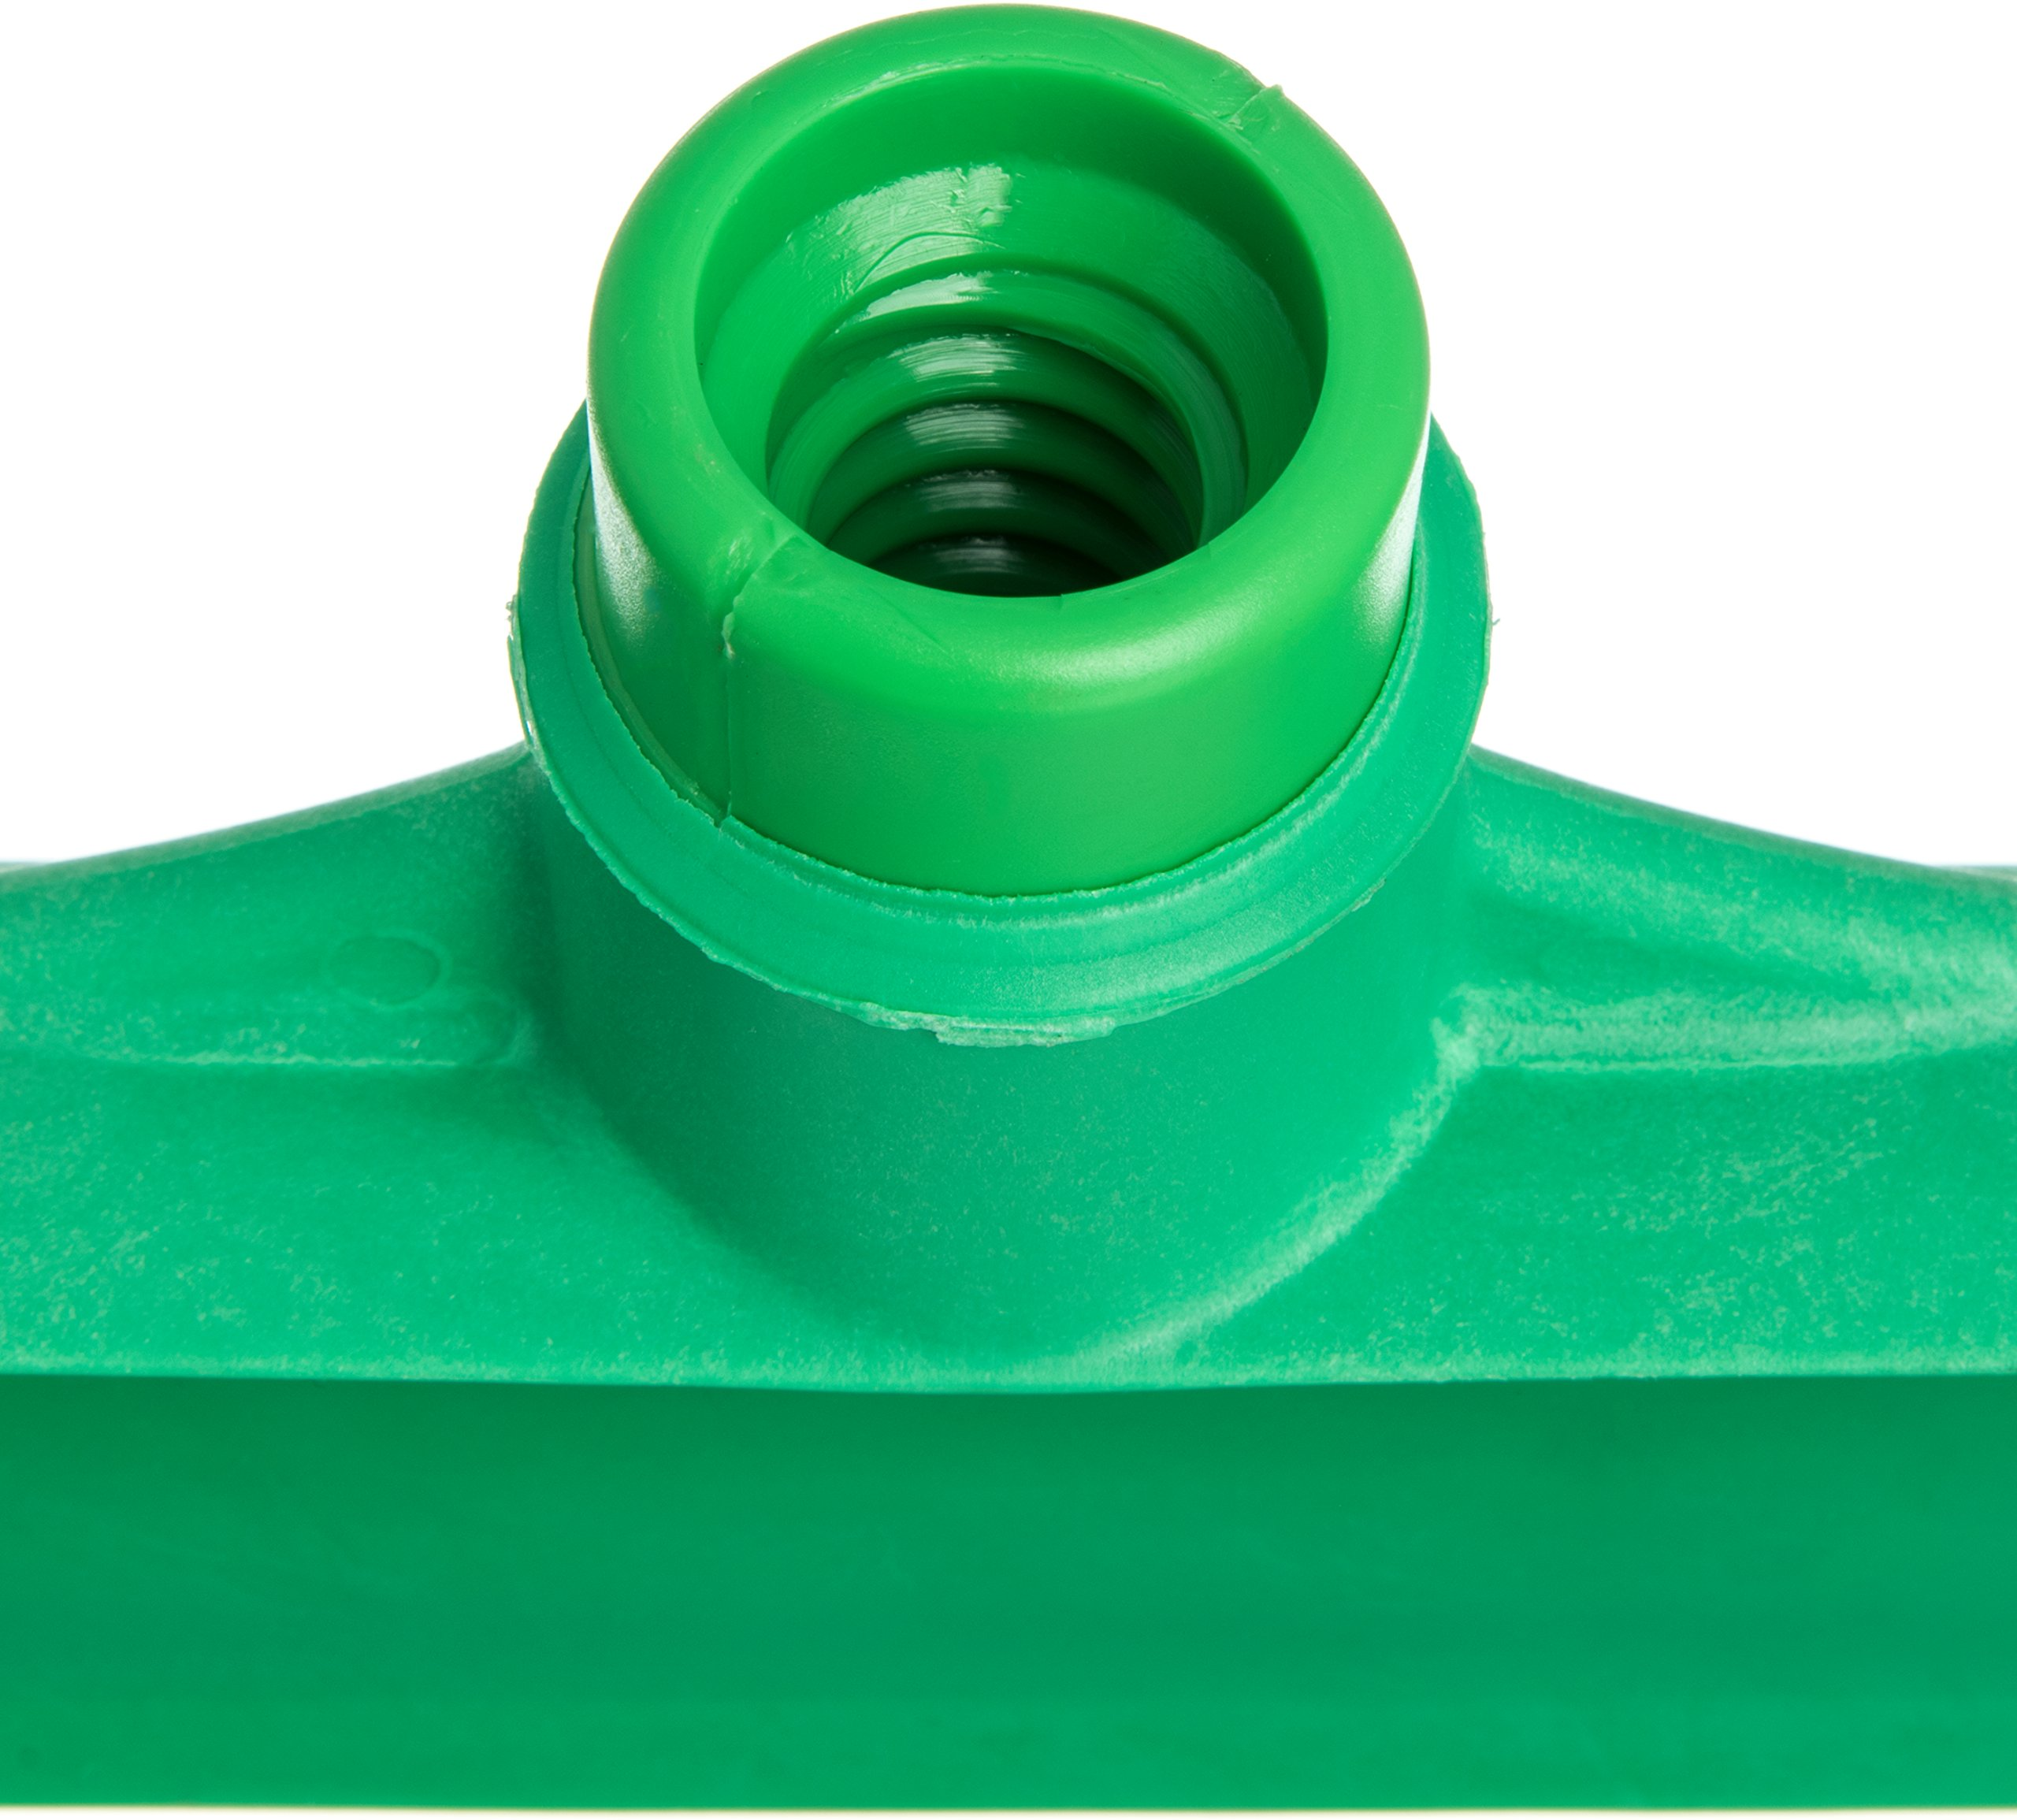 Carlisle 3656809 Solid One-Piece Foam Rubber Head Floor Squeegee, 24'' Length, Green by Carlisle (Image #10)